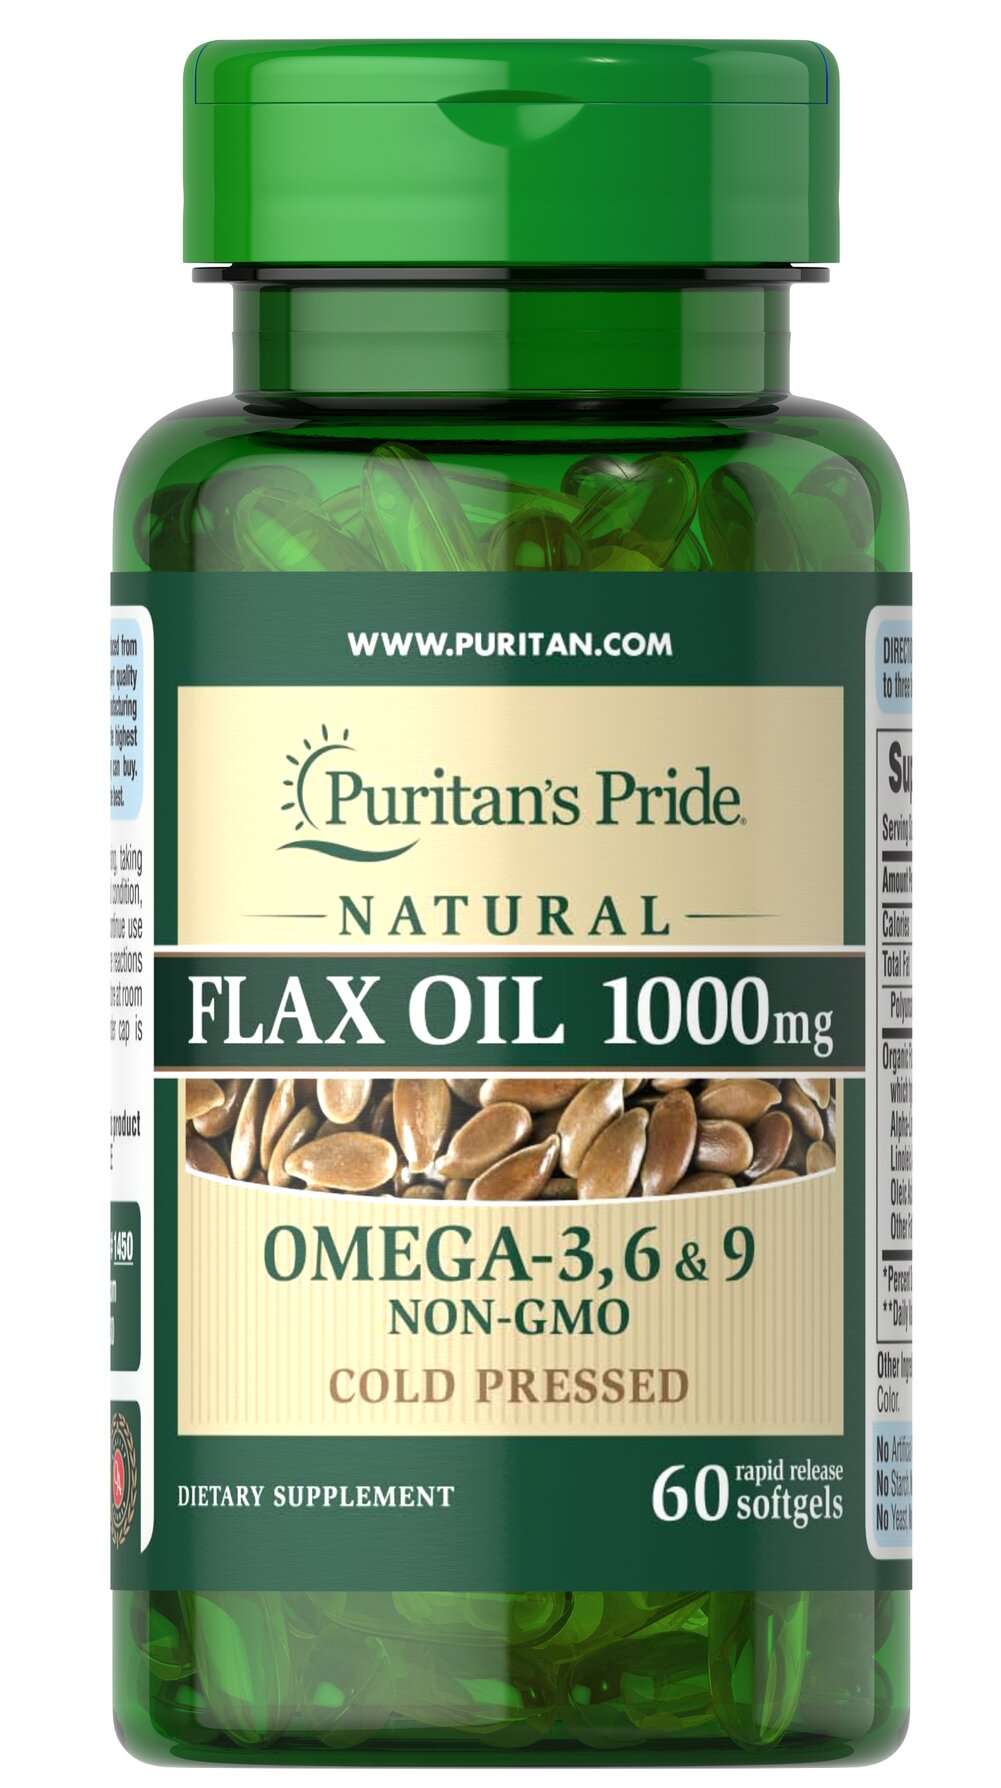 Natural Flax Oil 1000 mg  60 Rapid Release Softgels 1000 mg $8.99